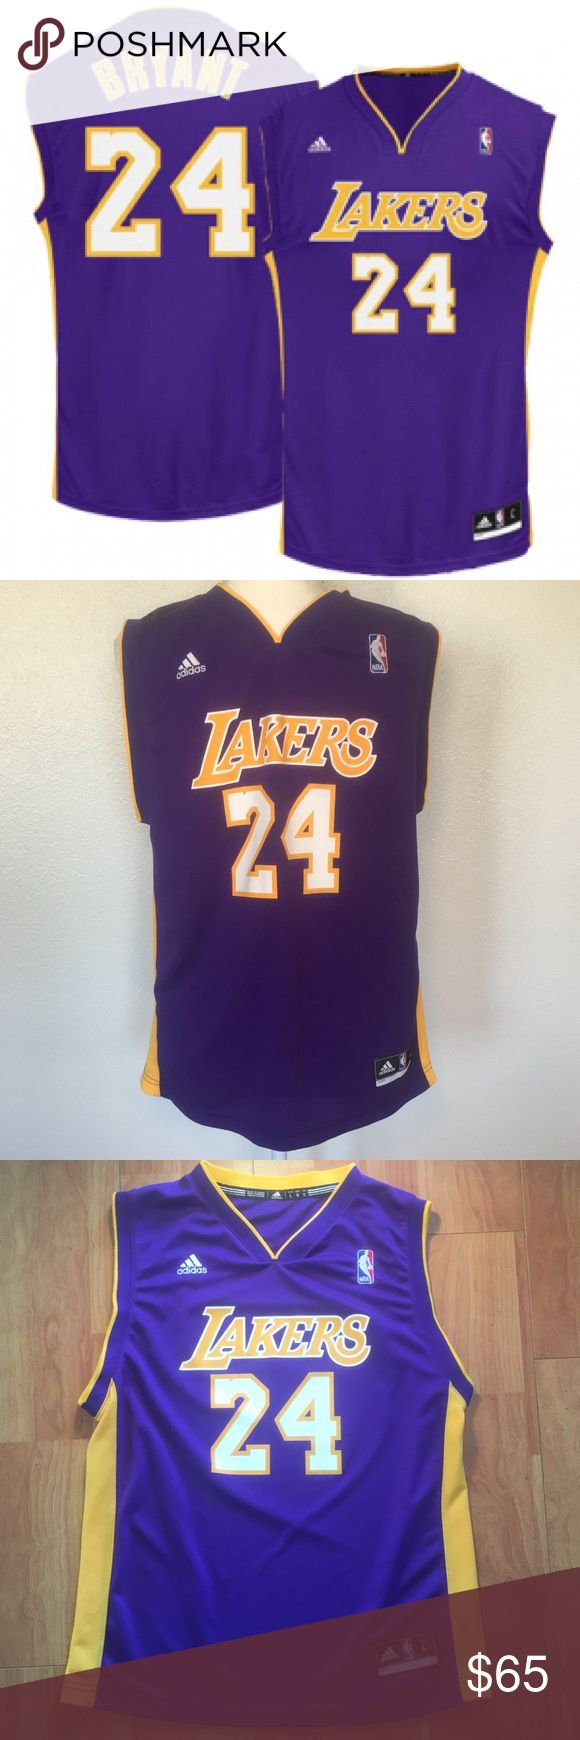 Lakers Kobe Bryant Adidas Swingman NBA Jersey. Youth Los Angeles Lakers Kobe Bryant Adidas Swingman NBA Jersey.  Celebrate your Los Angeles Lakers fandom with this Kobe Bryant Swingman  jersey from adidas. Everyone will know you come from a family of Los Angeles Lakers die-hards after they see the meticulous graphics on this jersey. adidas Other